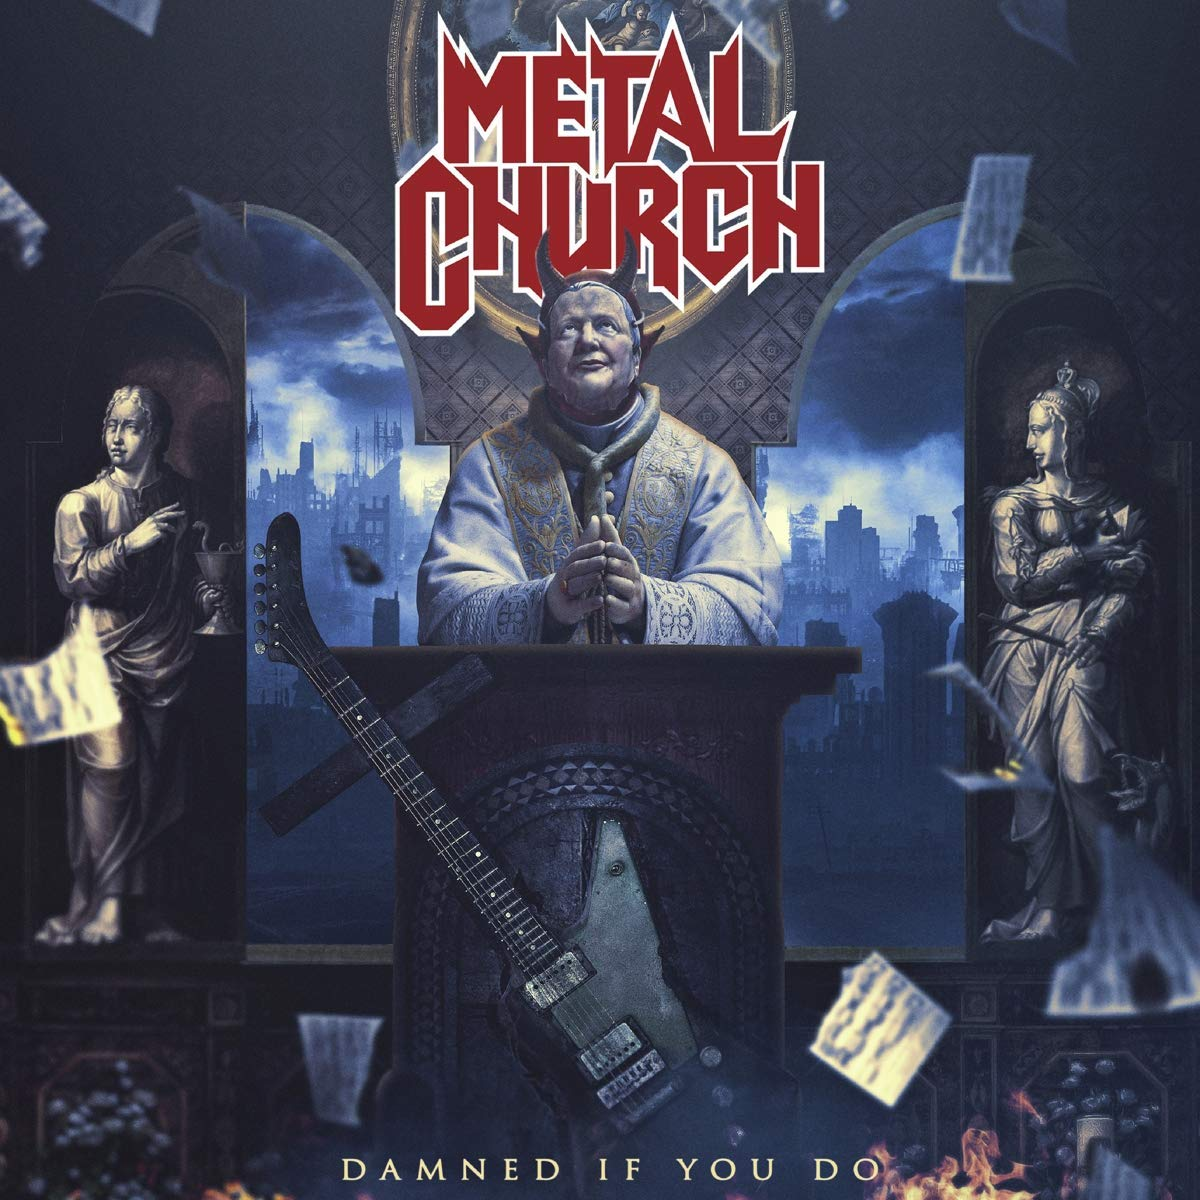 METAL CHURCH - DAMNED IF YOU DO (2 CD) (CD)